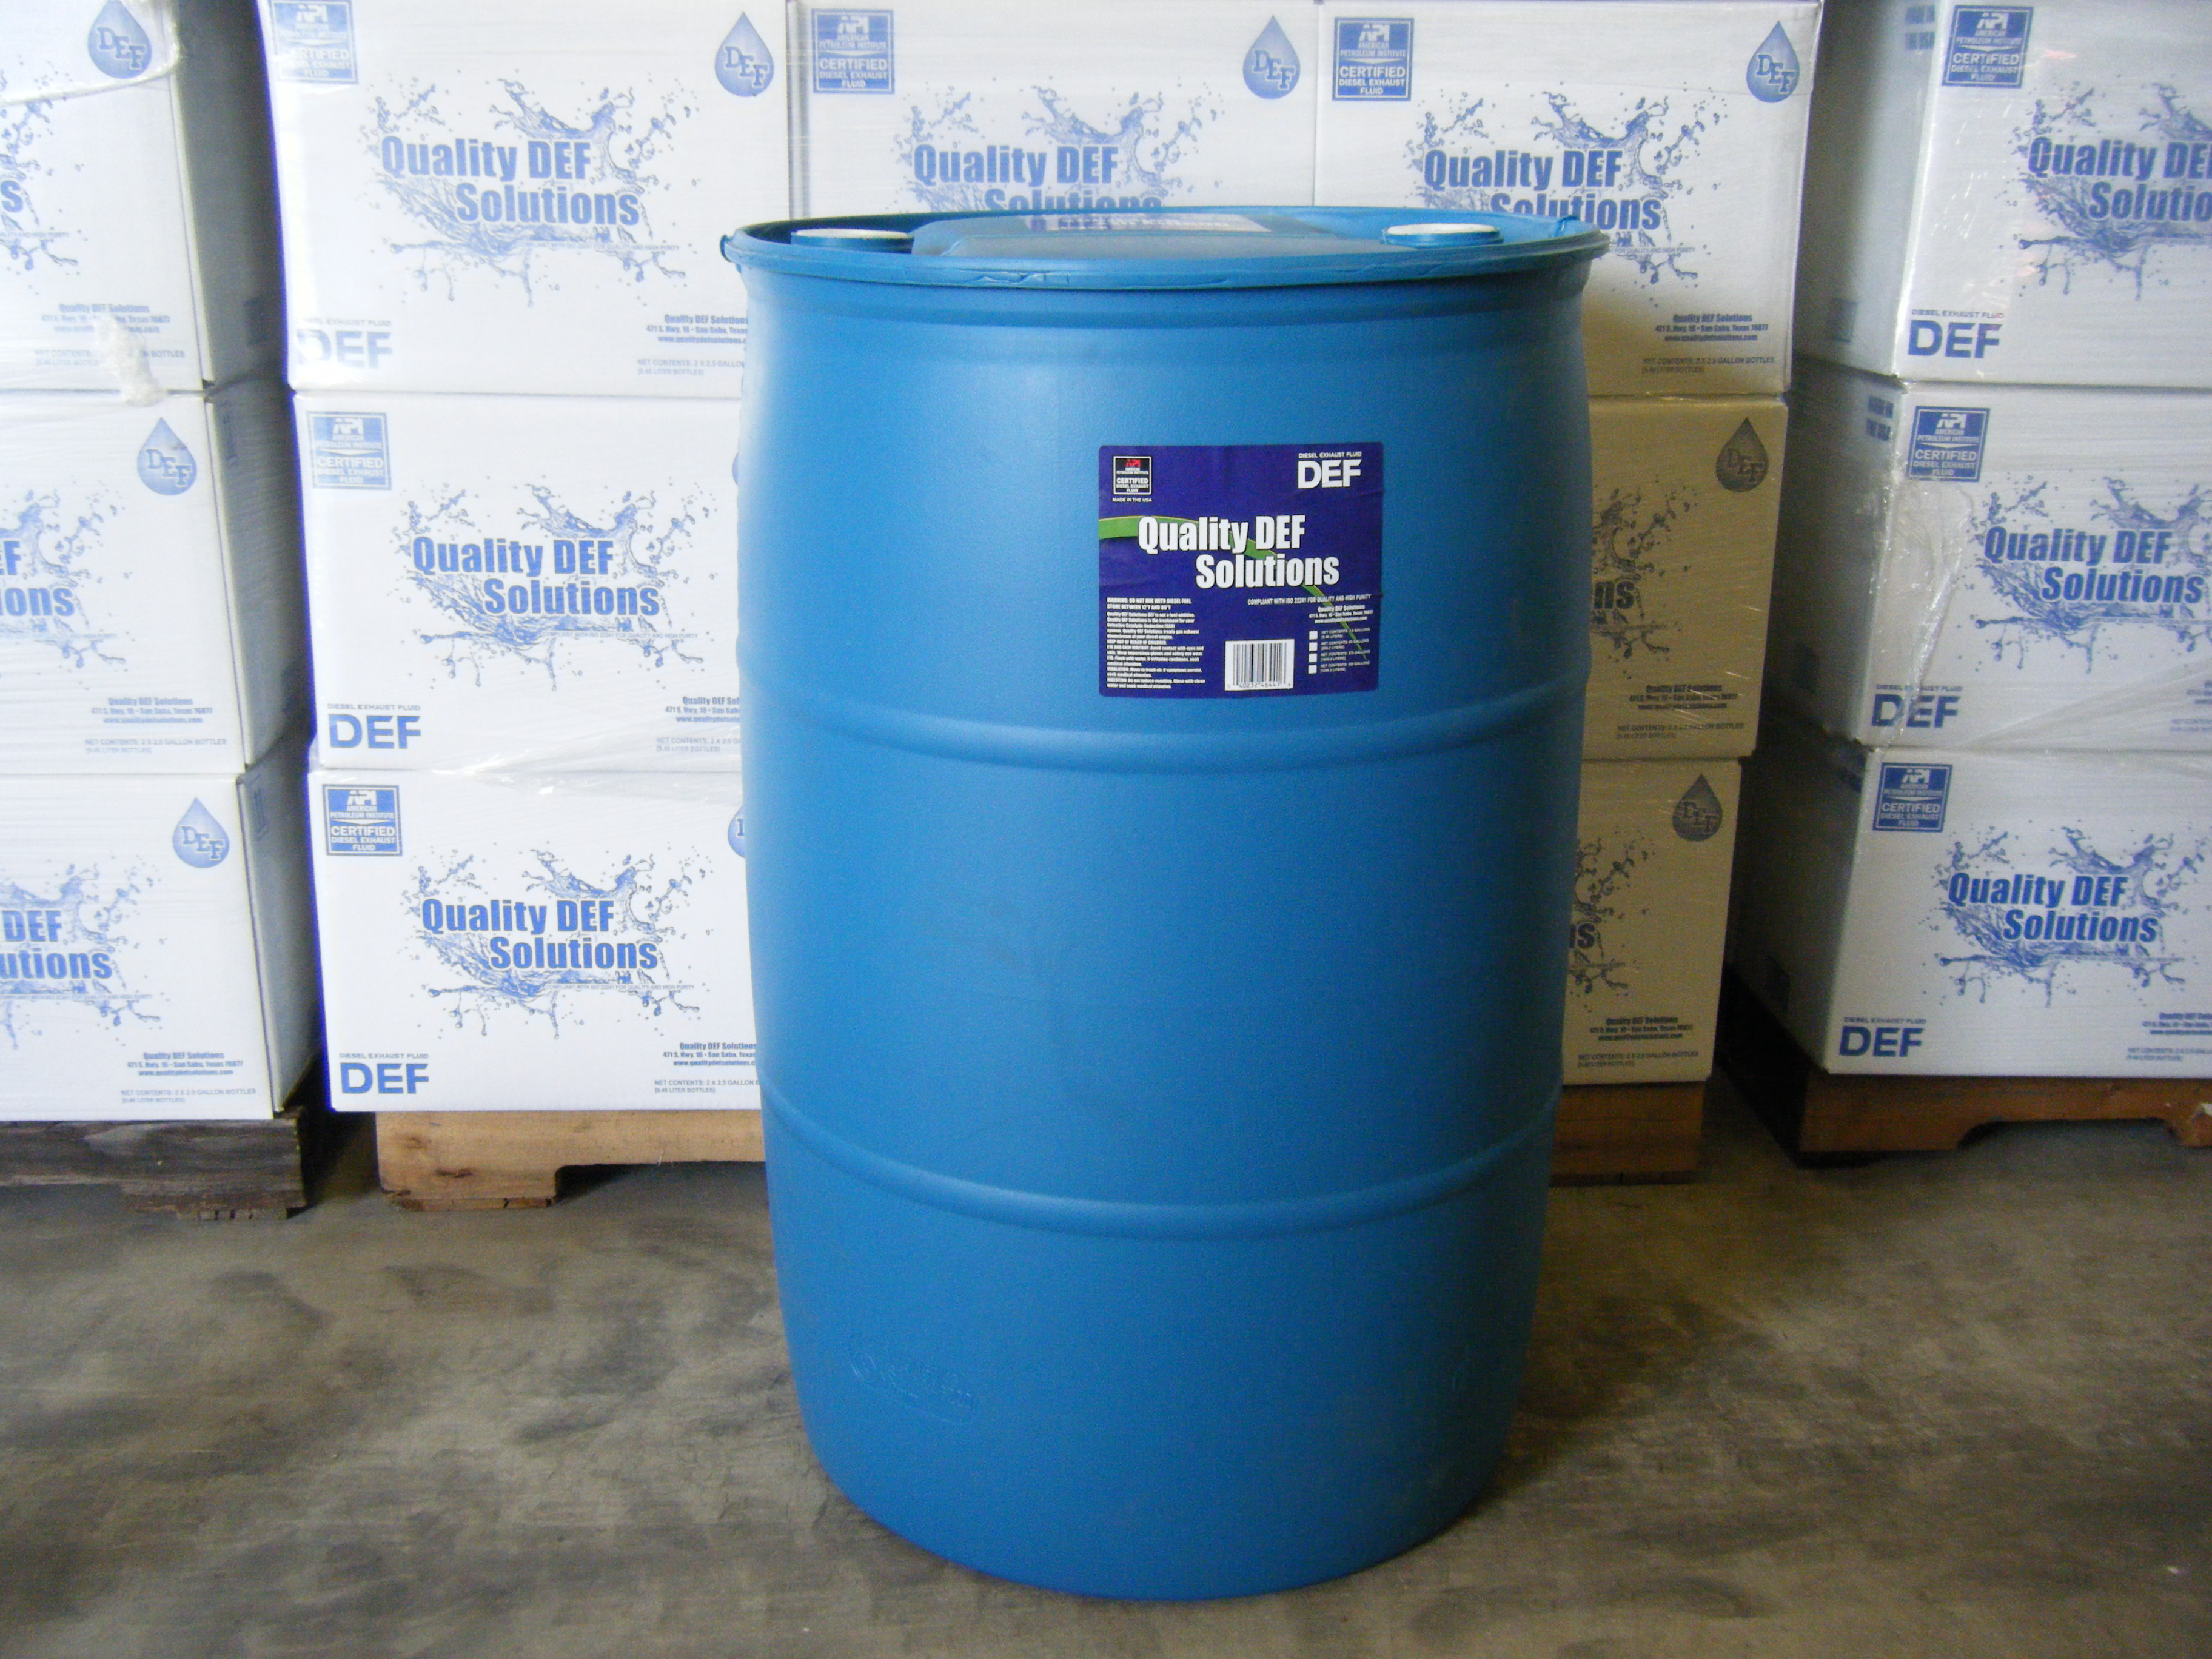 55 Gallon Quality DEF Solutions Drum